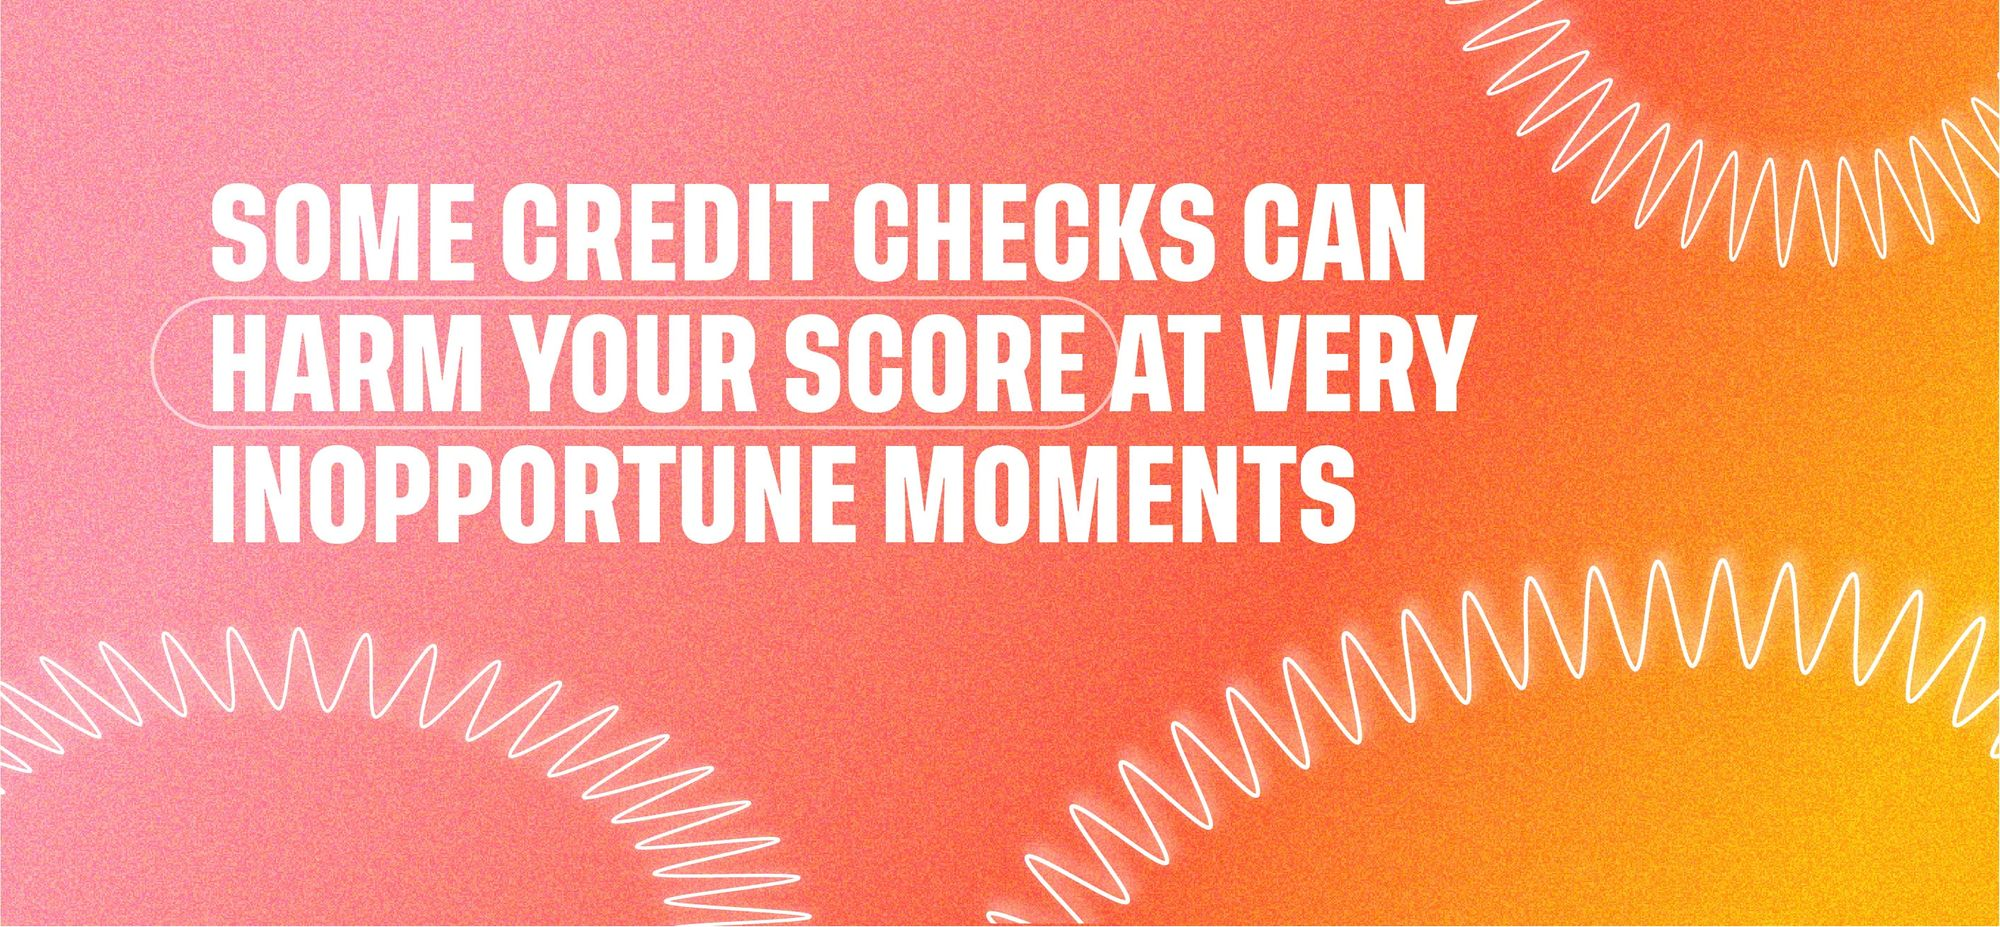 Some credit checks can harm your score at very inopportune moments